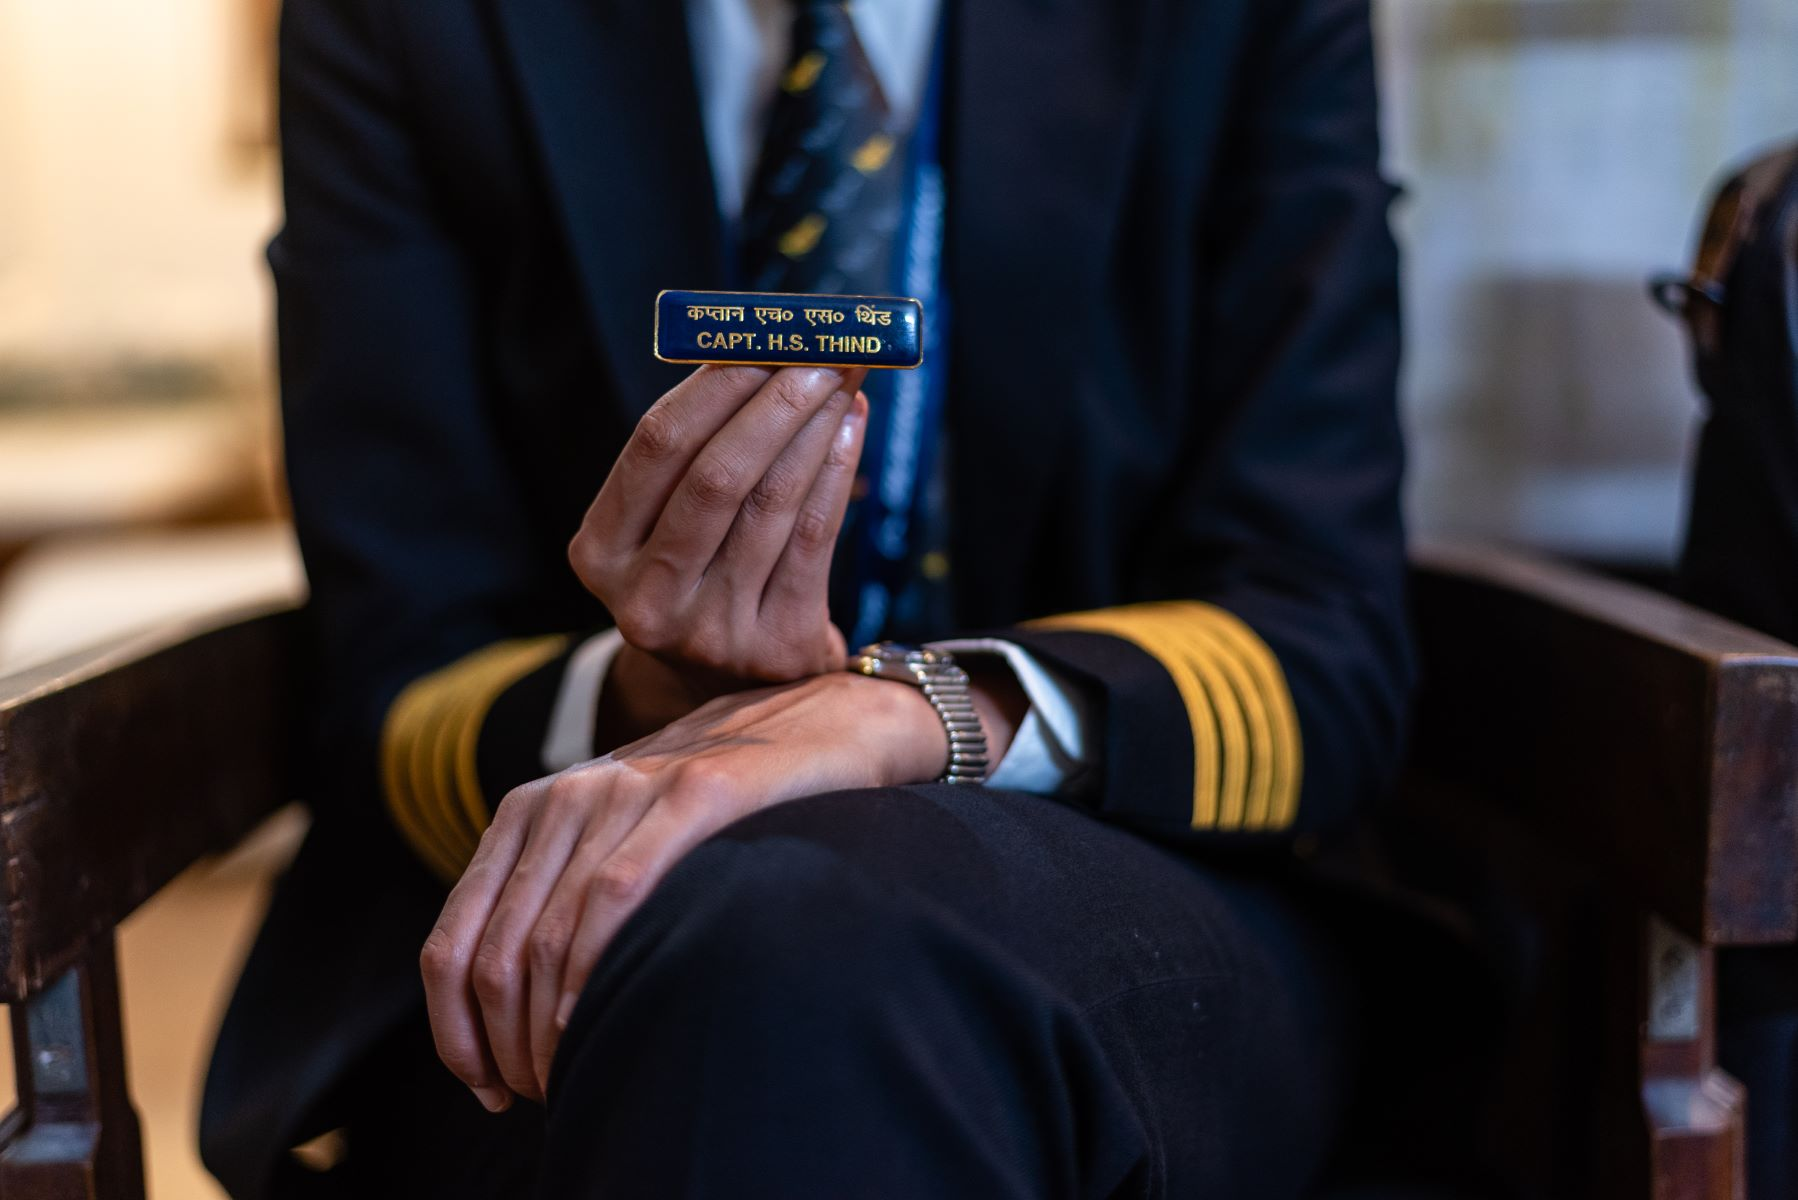 Holding a badge that belonged to her father, Captain Thind has it pinned on her flight bag at all times.